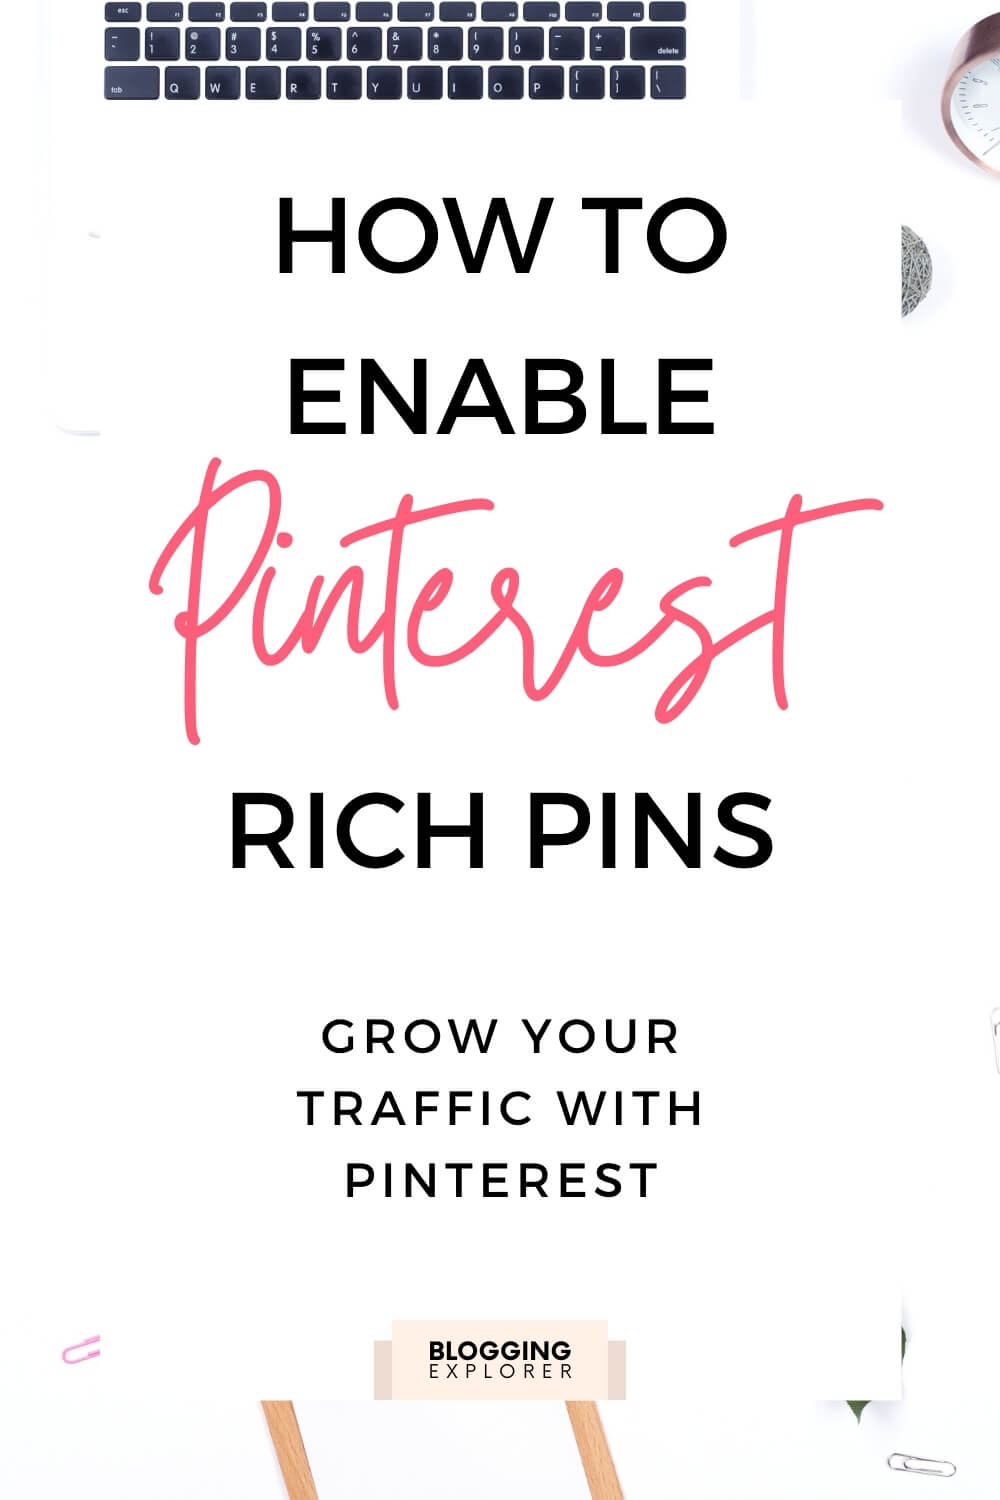 How to enable Pinterest rich pins quickly - Grow blog traffic with Pinterest marketing